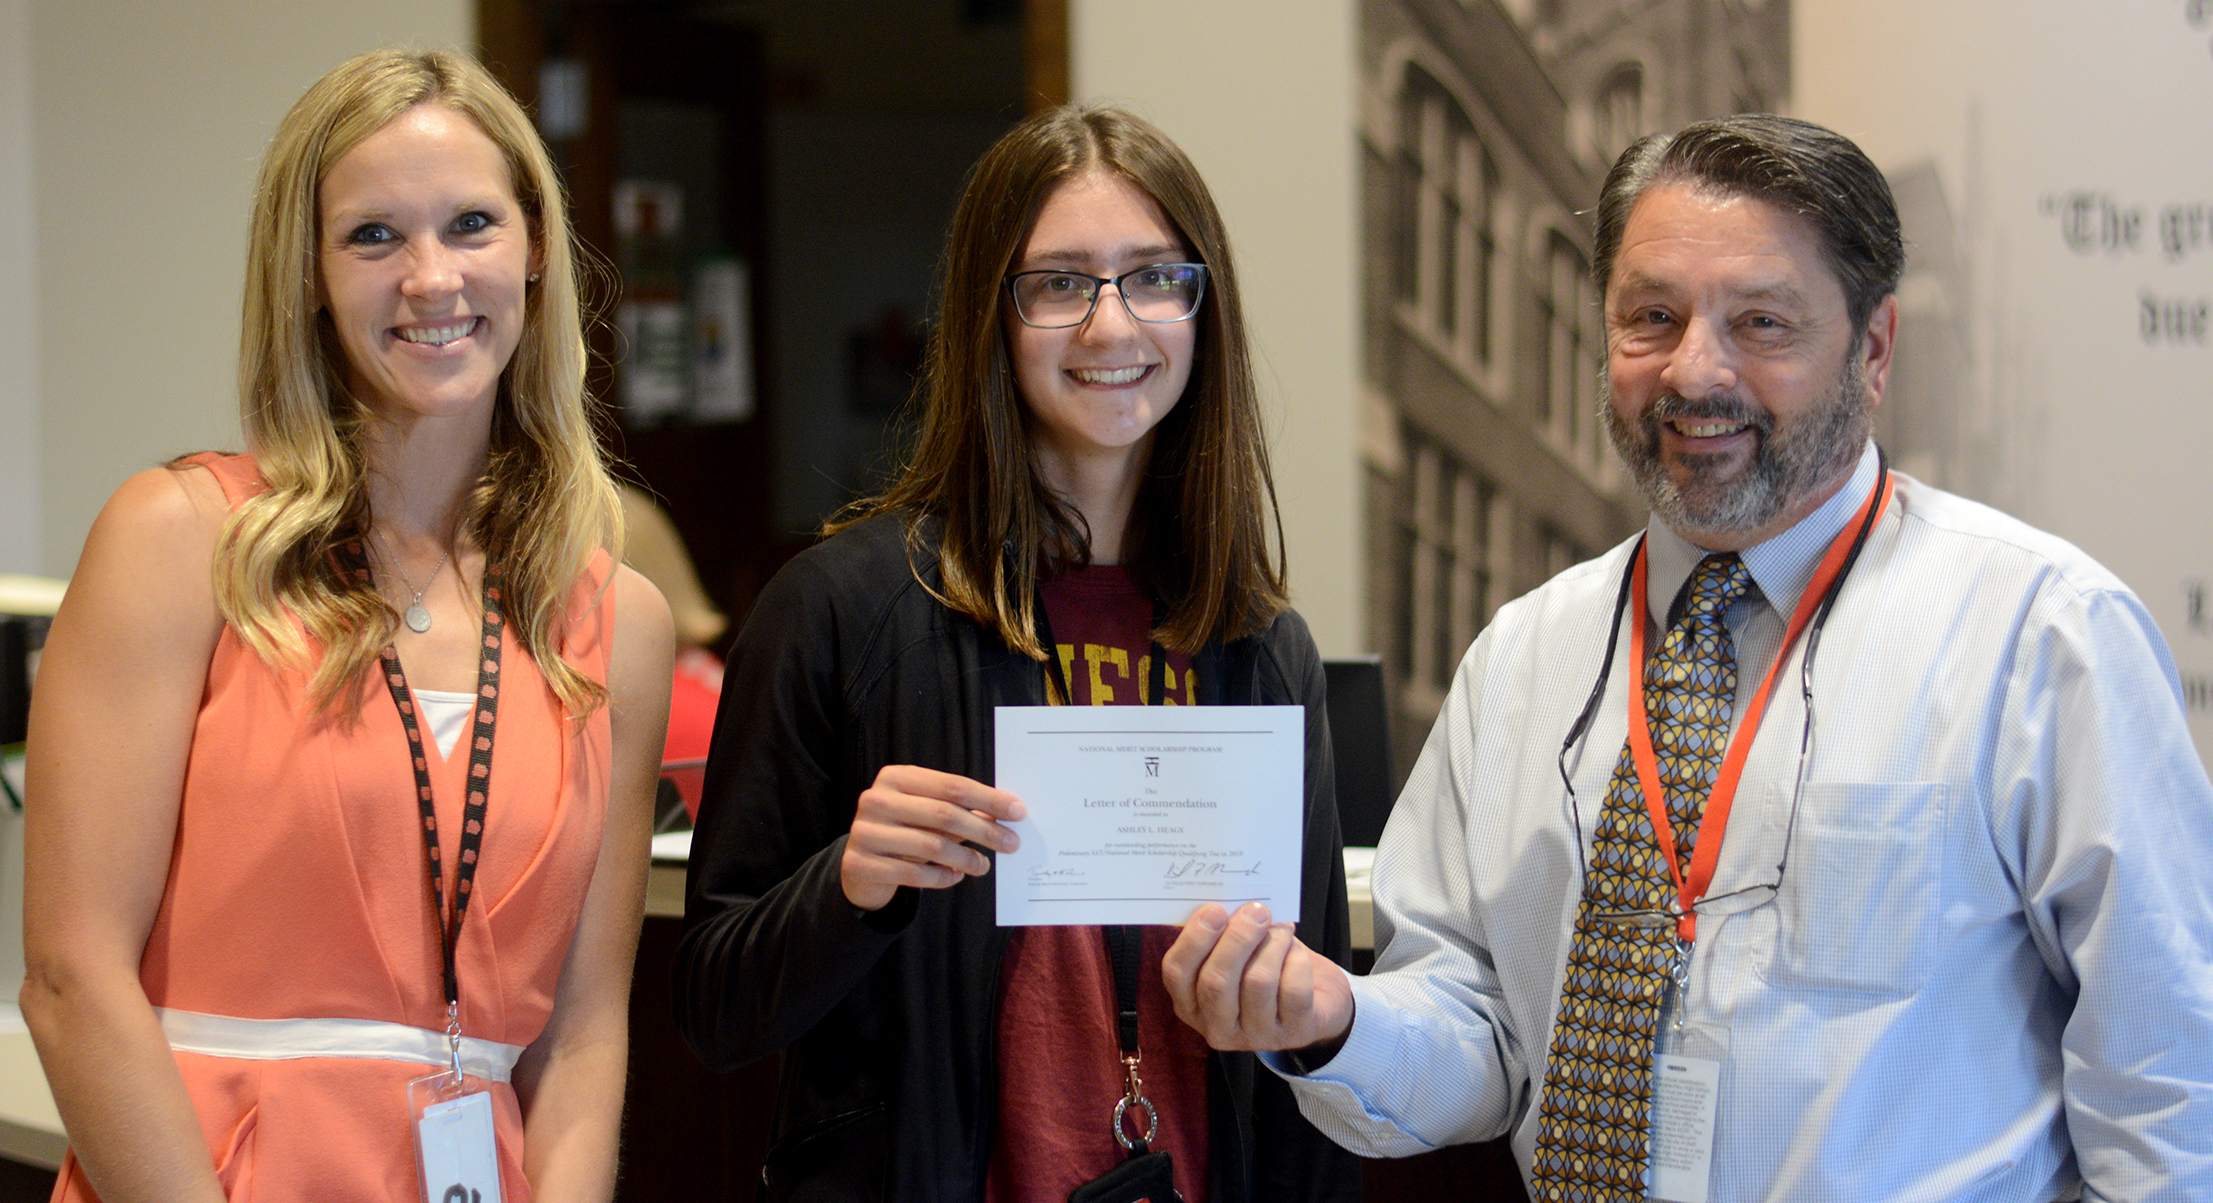 LaSalle-Peru Township High School senior Ashley Heagy receives a Letter of Commendation from LPHS i